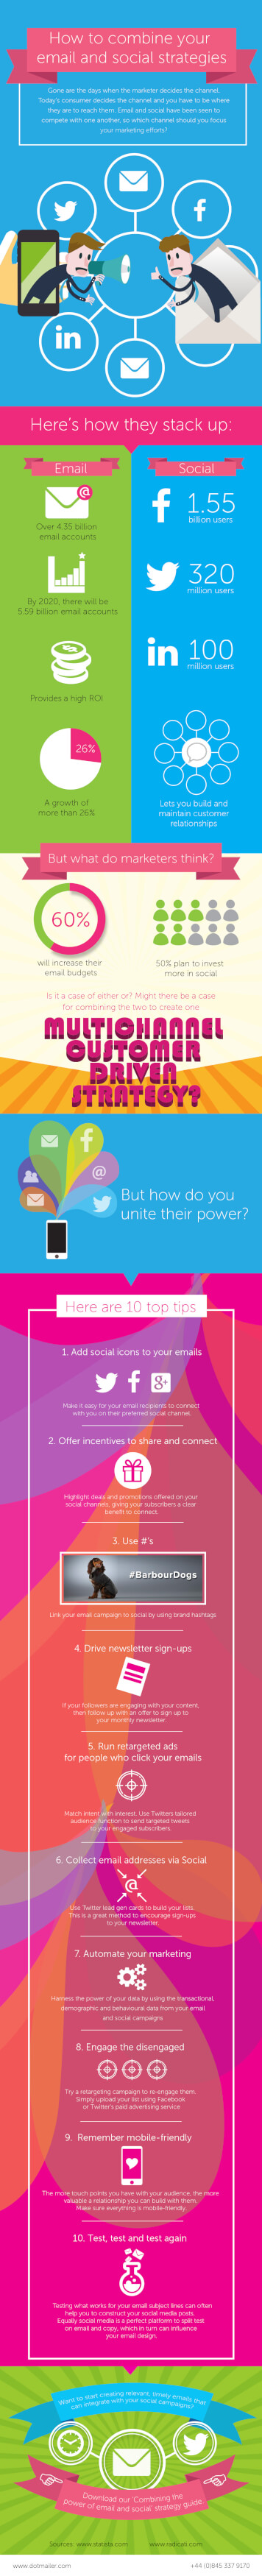 [Infographic] Combine Email and Social Media Strategies